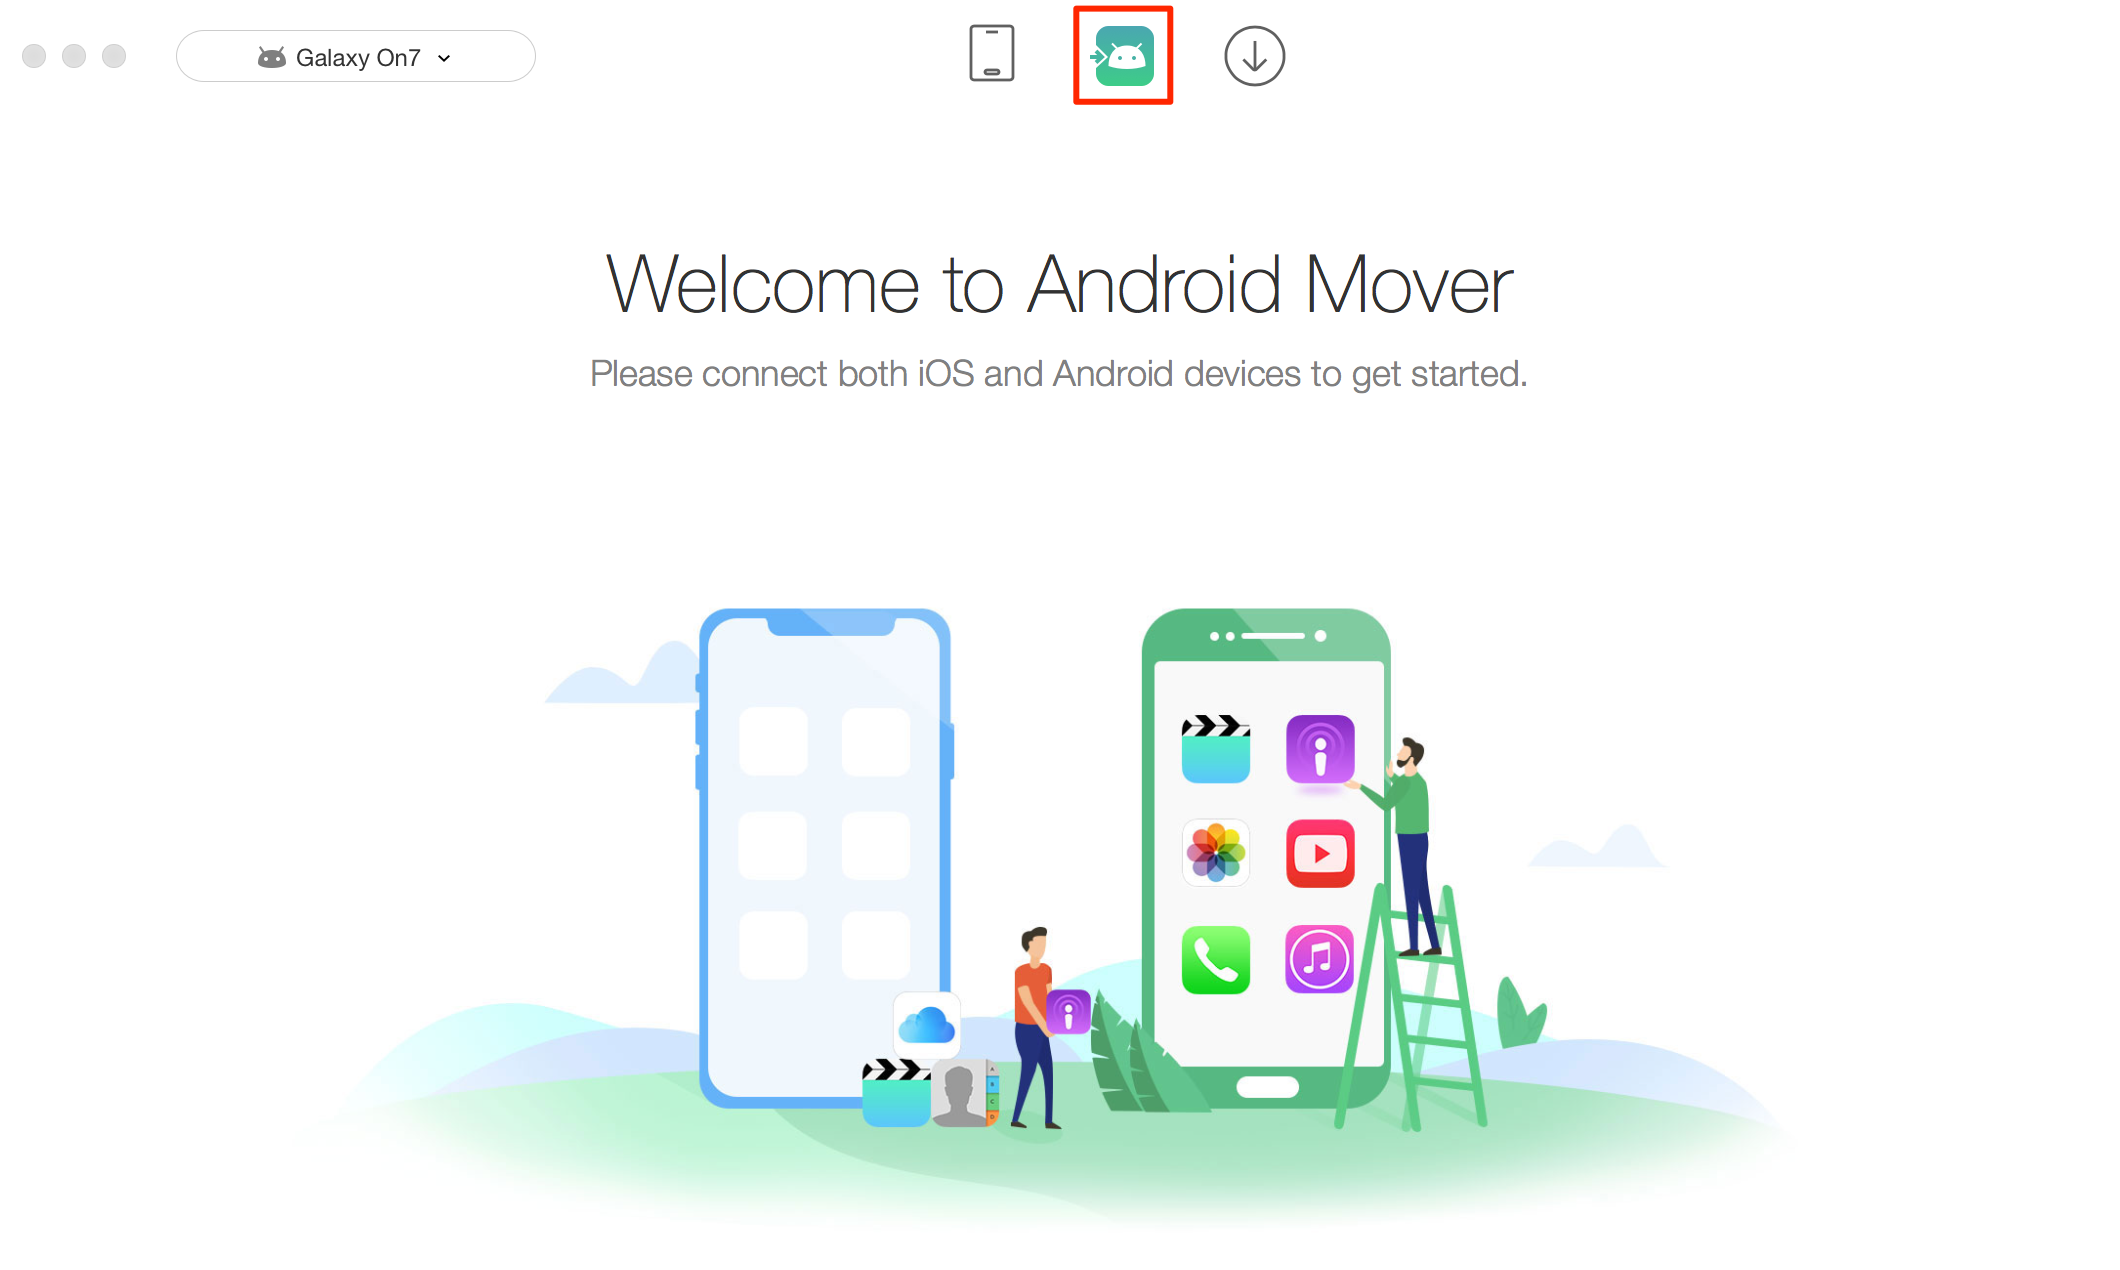 Transfer Data from iPhone to Android – Step 1